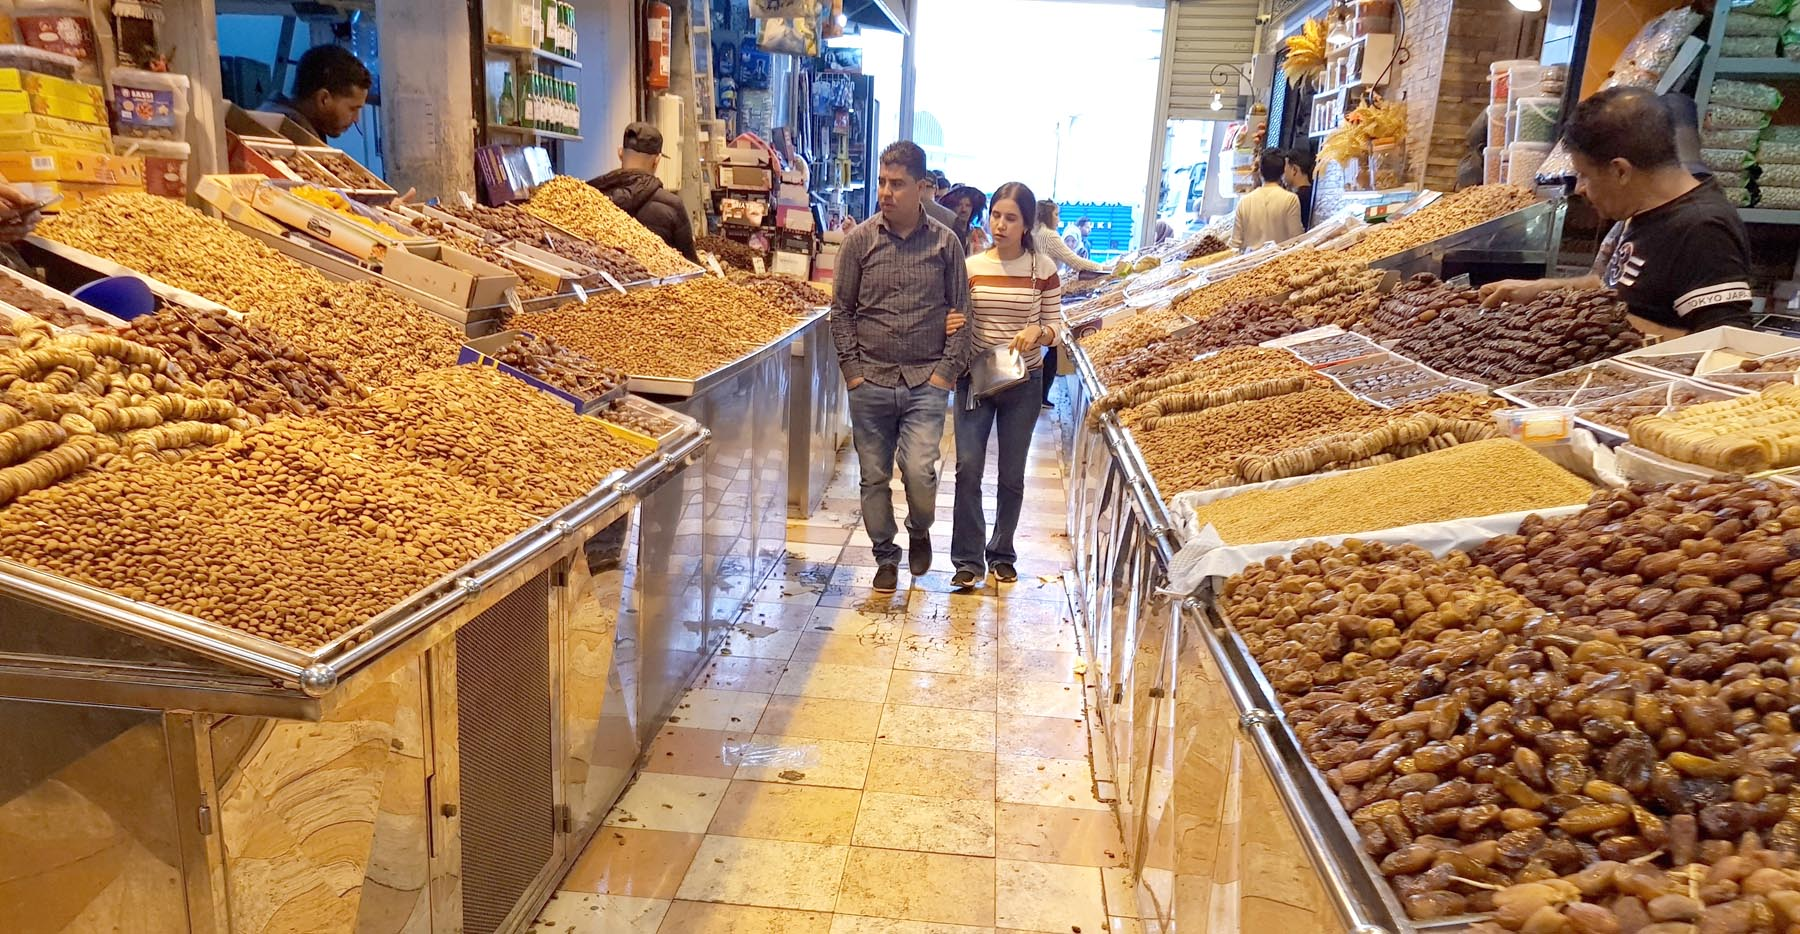 People tour the dry fruit market in Derb Omar. (Saad Guerraoui)